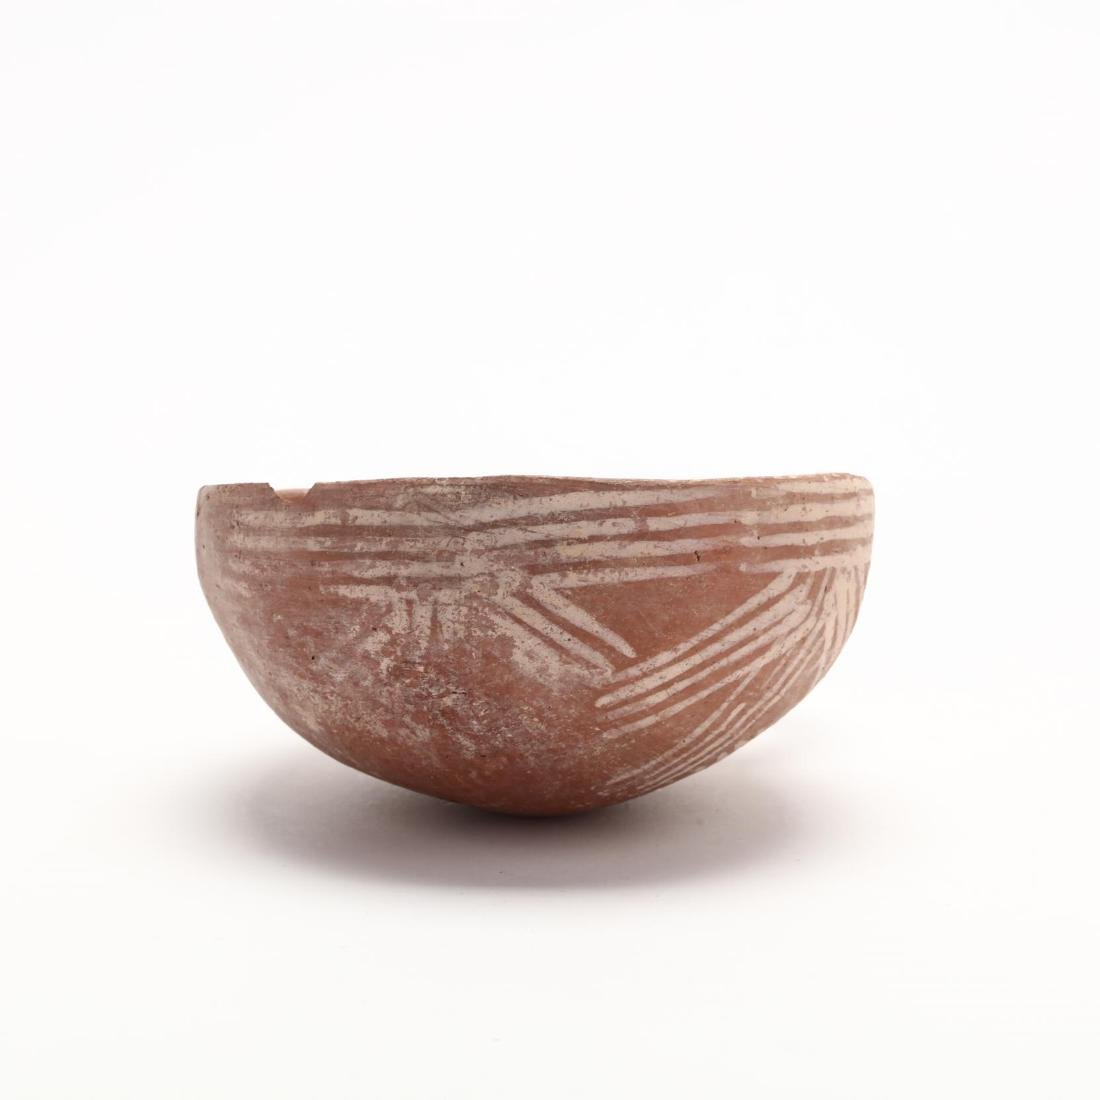 Cypriot Middle Bronze Age Red Ware Milk Bowl - 4